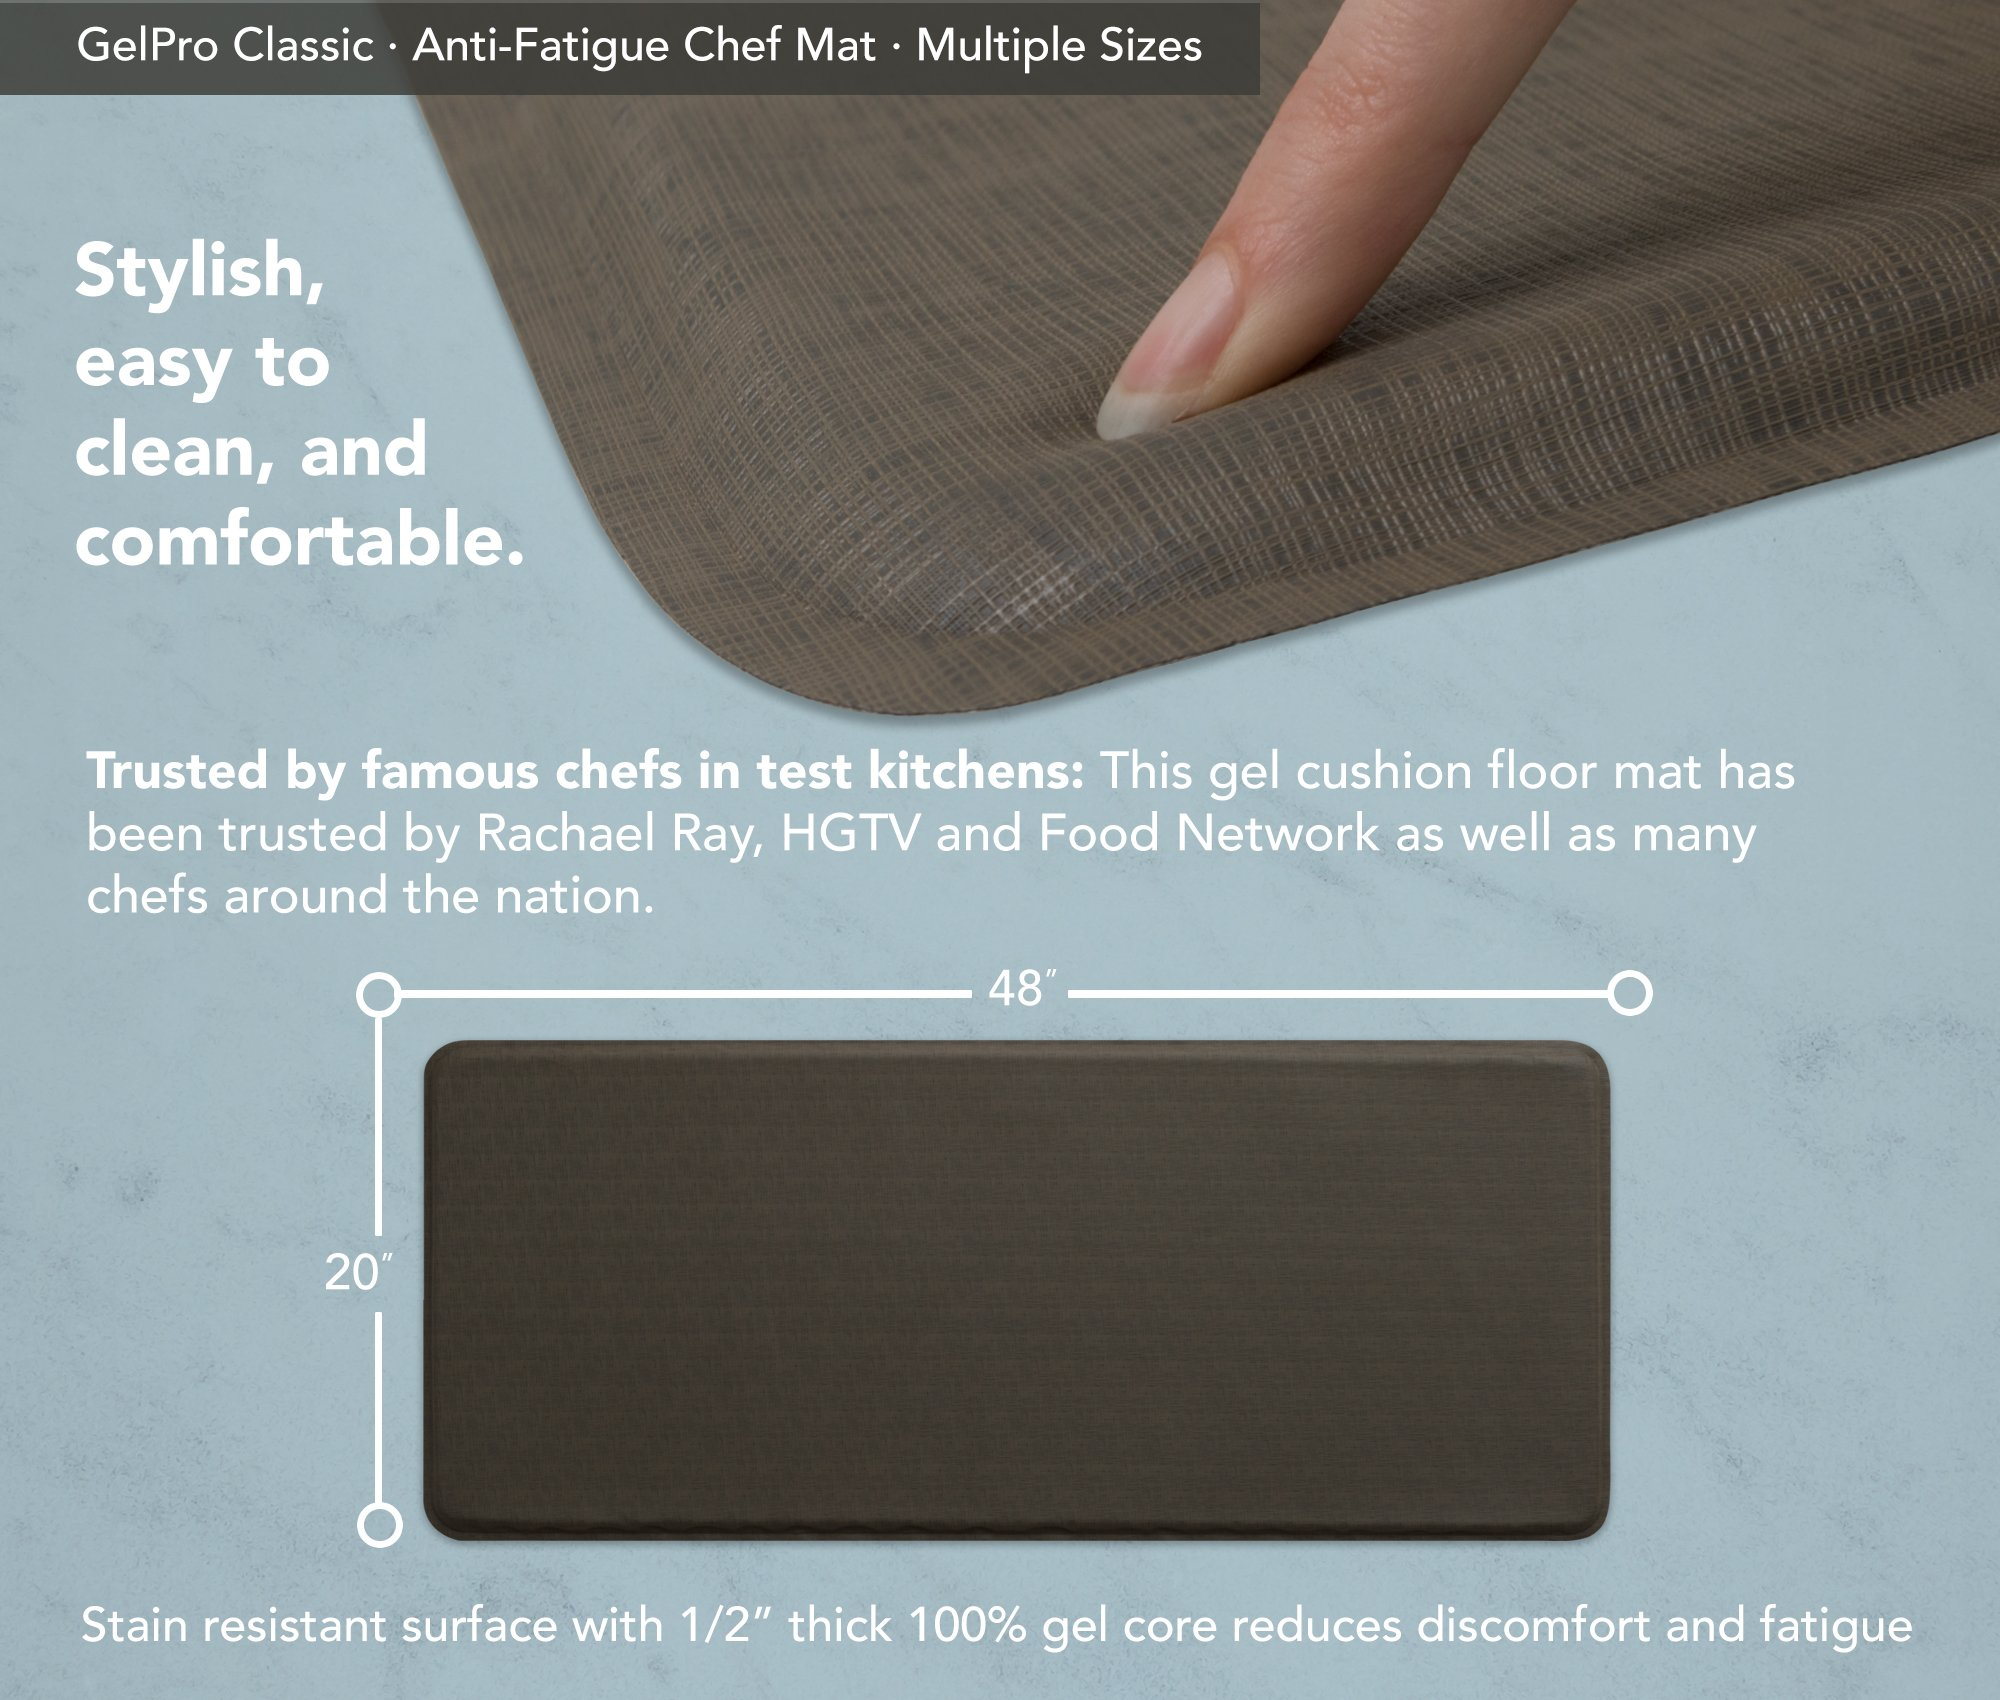 "GelPro Classic Anti-Fatigue Kitchen Comfort Chef Floor Mat, 20x48"", Linen Granite Gray Stain Resistant Surface with 1/2"" Gel Core for Health and Wellness by GelPro (Image #3)"